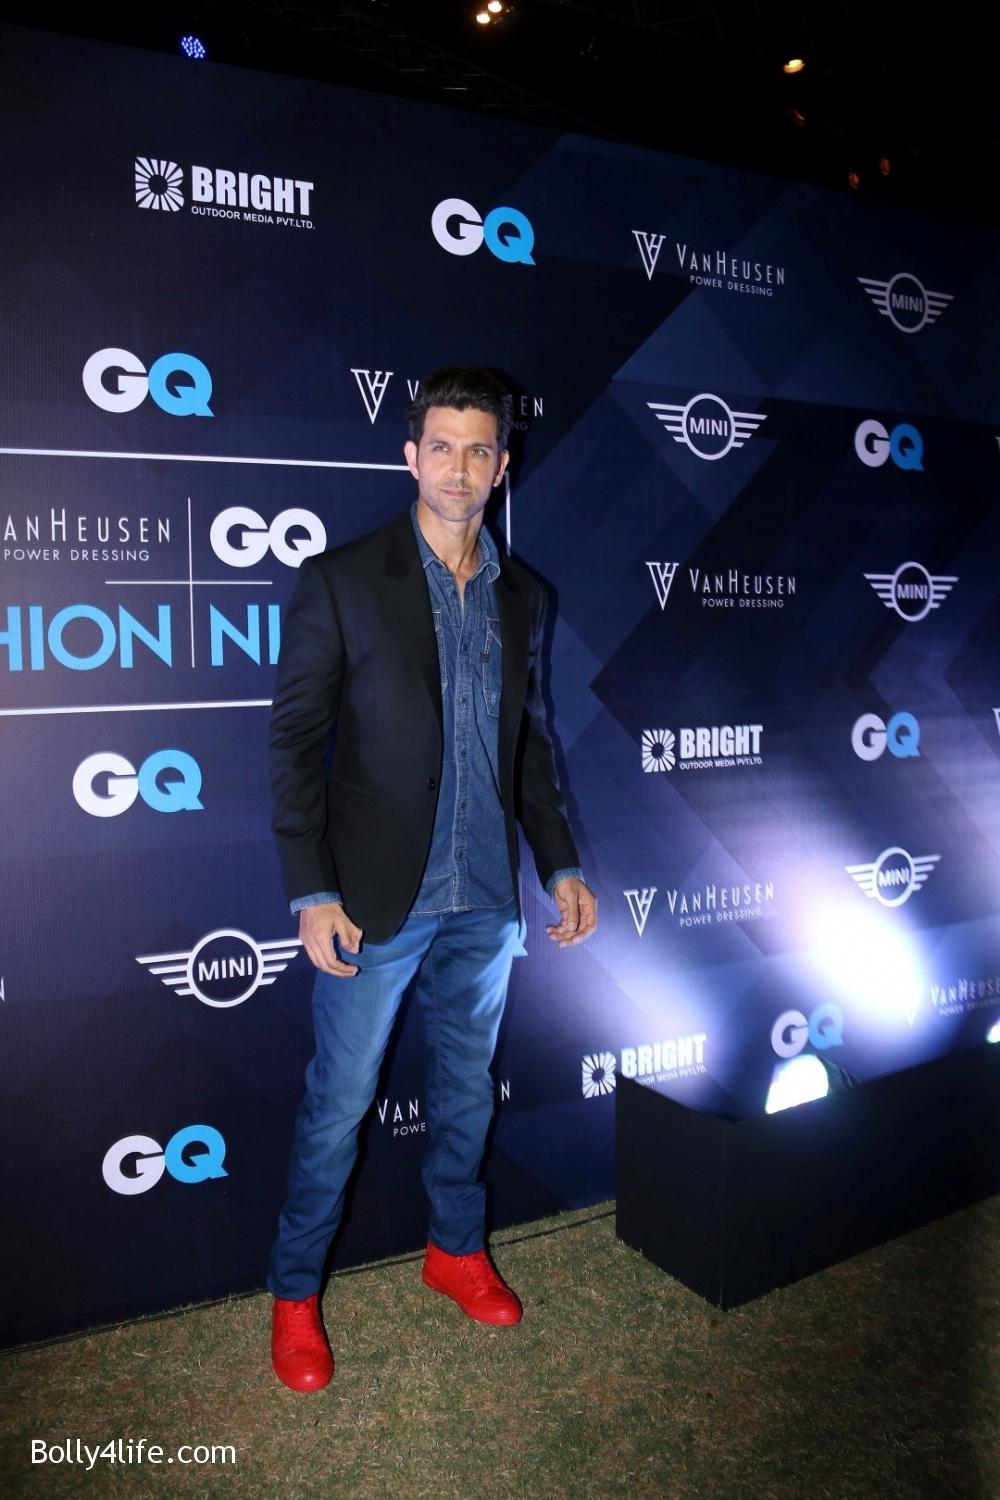 Hrithik-Roshan-during-the-Van-Heusen-GQ-Fashion-Nights-in-Mumbai-2.jpg